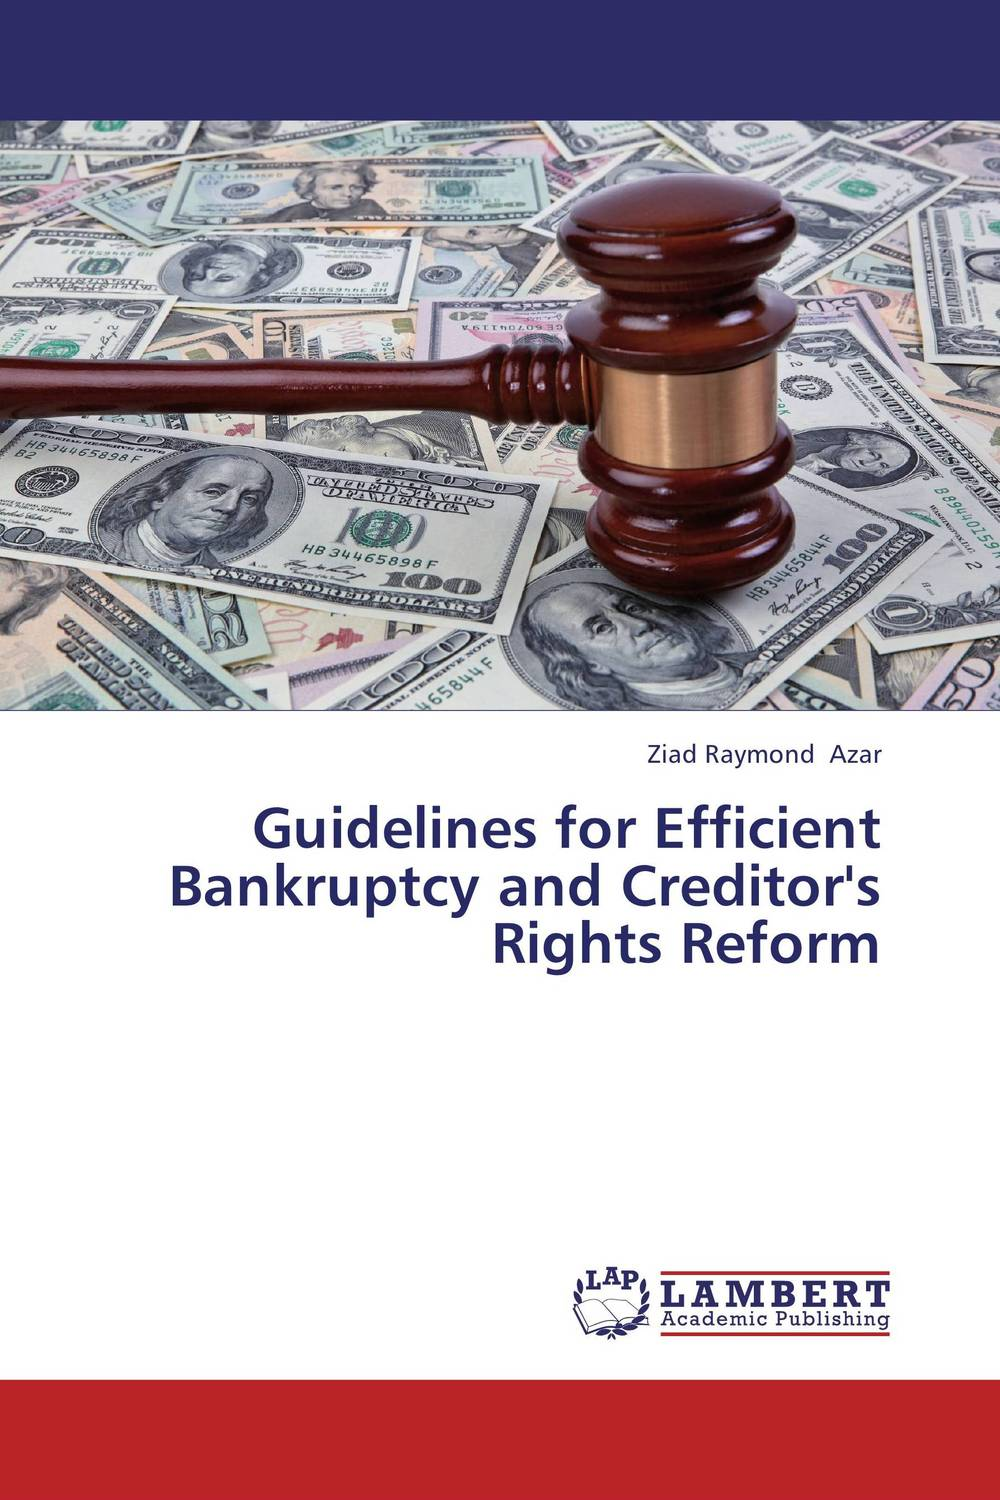 Guidelines for Efficient Bankruptcy and Creditor's Rights Reform edith hotchkiss corporate financial distress and bankruptcy predict and avoid bankruptcy analyze and invest in distressed debt